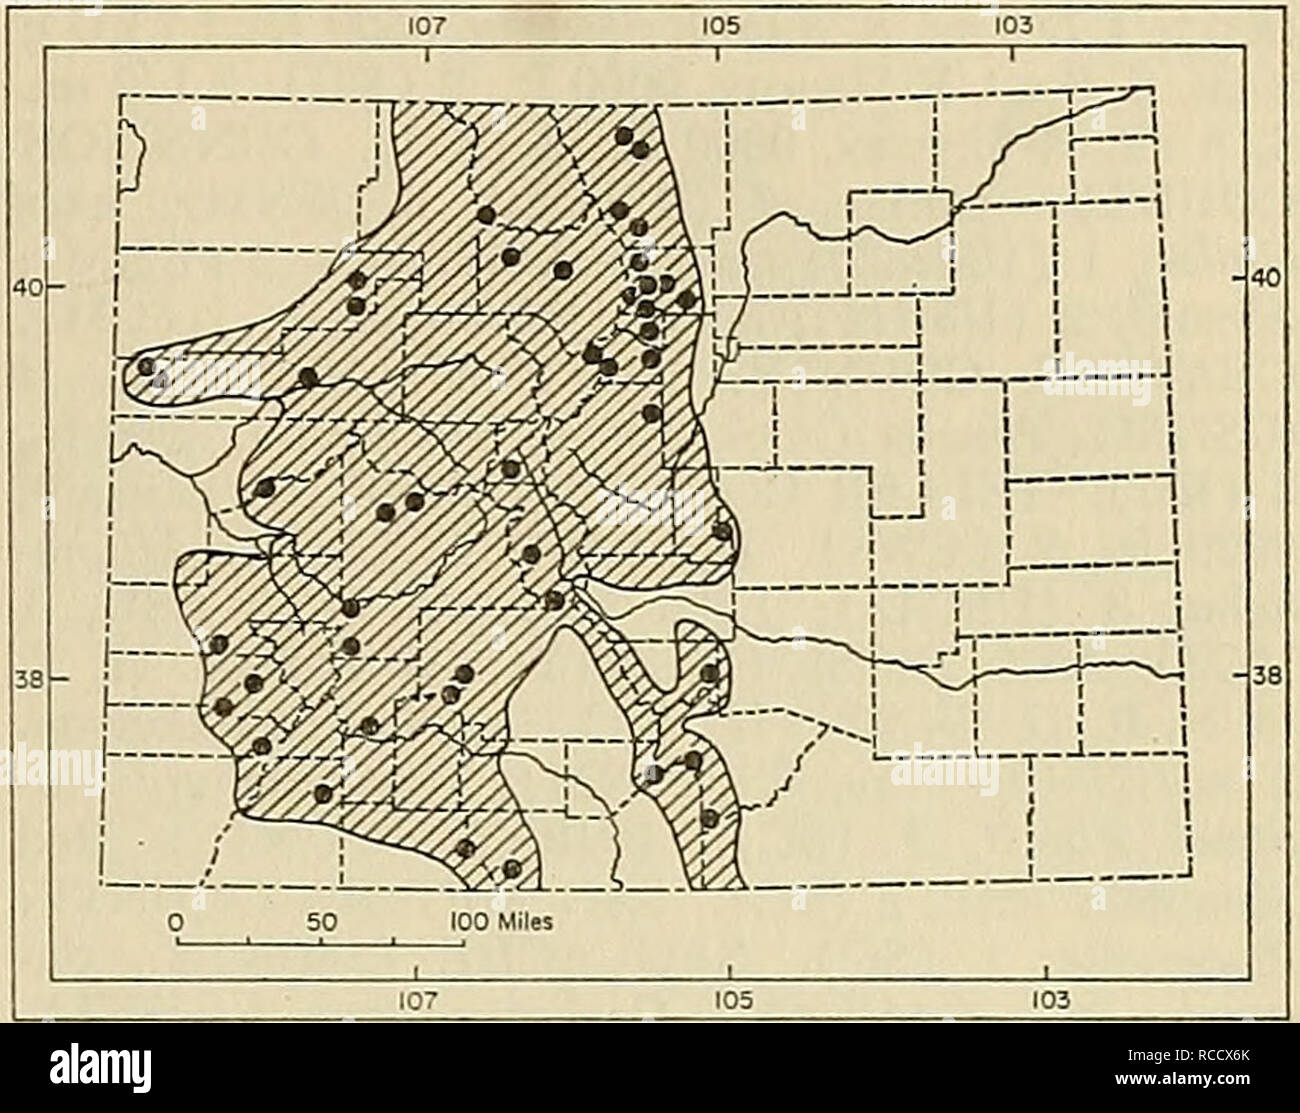 . Distribution of mammals in Colorado. Mammals. 1972 ARMSTRONG: COLORADAN MAMMALS 49 road) NE Silver Cliff, 8100 ft., 1 (KU); Westcliffe, 1 (USNM). Additional records: CLEAR CREEK COUNTY: above Silverplume, 9000 ft. (von Bloeker, 1944:312). EL PASO COUNTY: near Colorado Springs (War- ren, 1942:11). MONTEZUMA COUNTY: Mug House, Wetherill Mesa, Mesa Verde National Park (Hoffmeister, 1967:462). Sorex palustris Water Shrew Sorex palustris occurs near water through- out the mountains of the western three-fifths of Colorado. Extremes of elevation of speci- mens examined are 6000 feet at Rifle Creek  - Stock Image